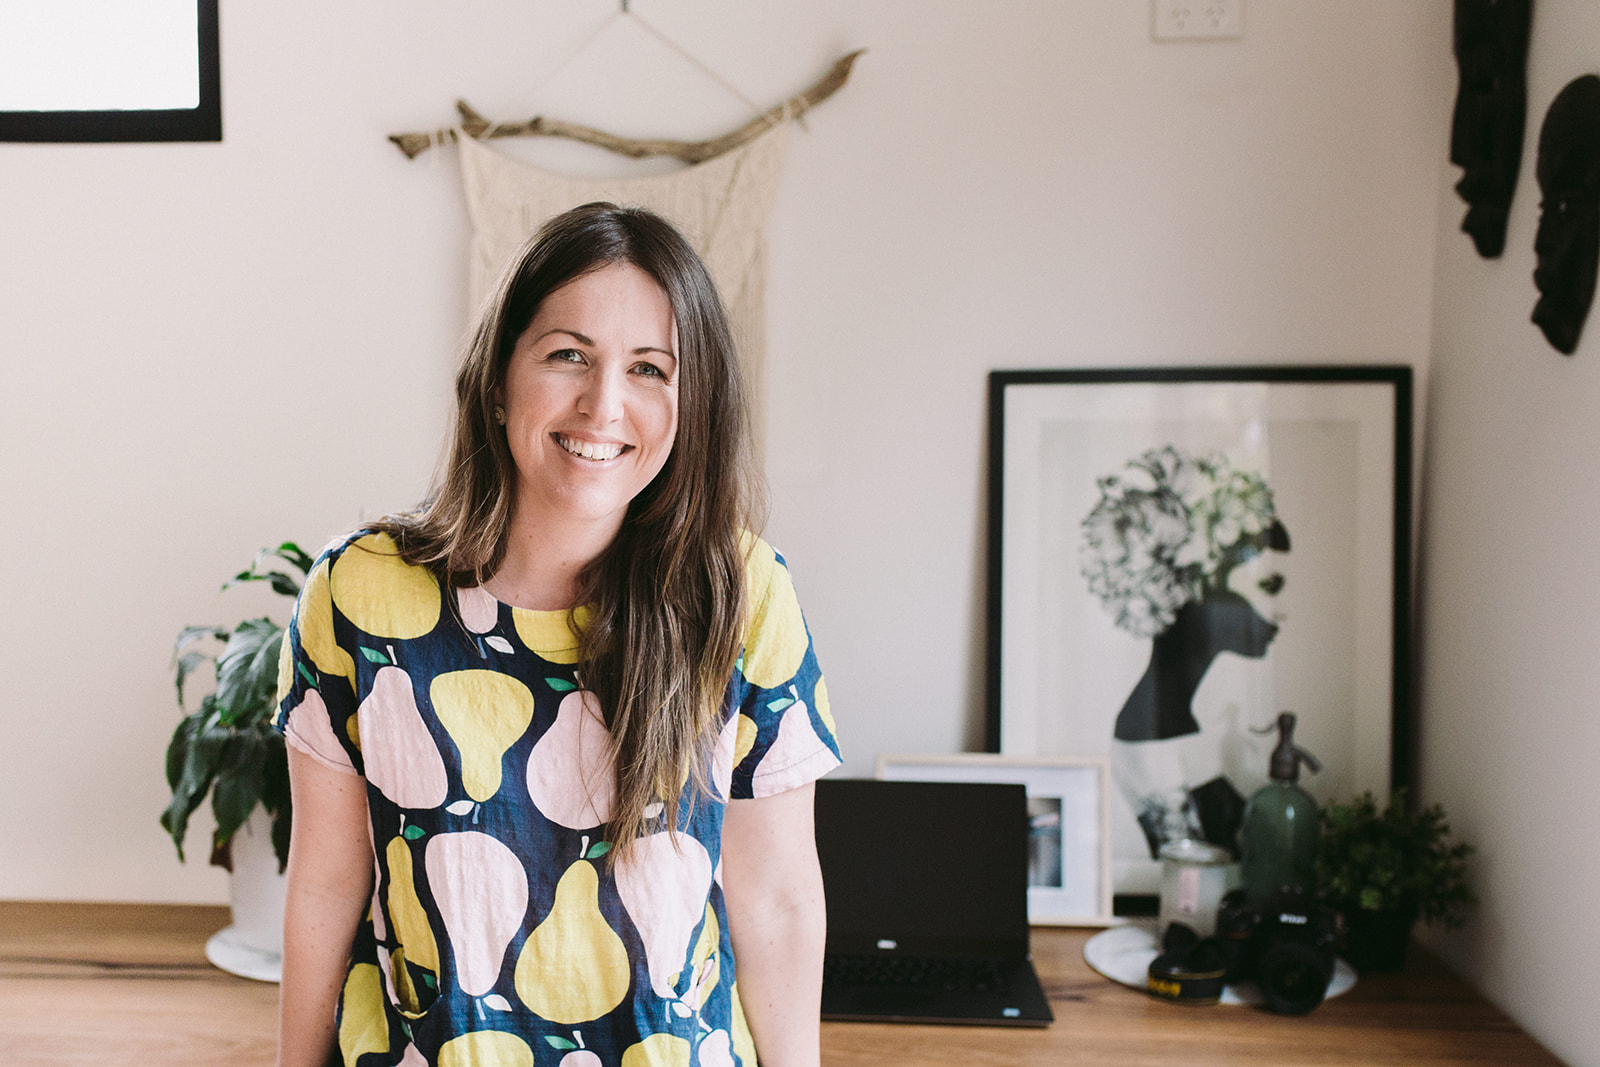 Often I work from home in my PJs on the couch…sometimes I get dressed and sit at my desk like a grown up! Image credit: Lecinda Ward Photography